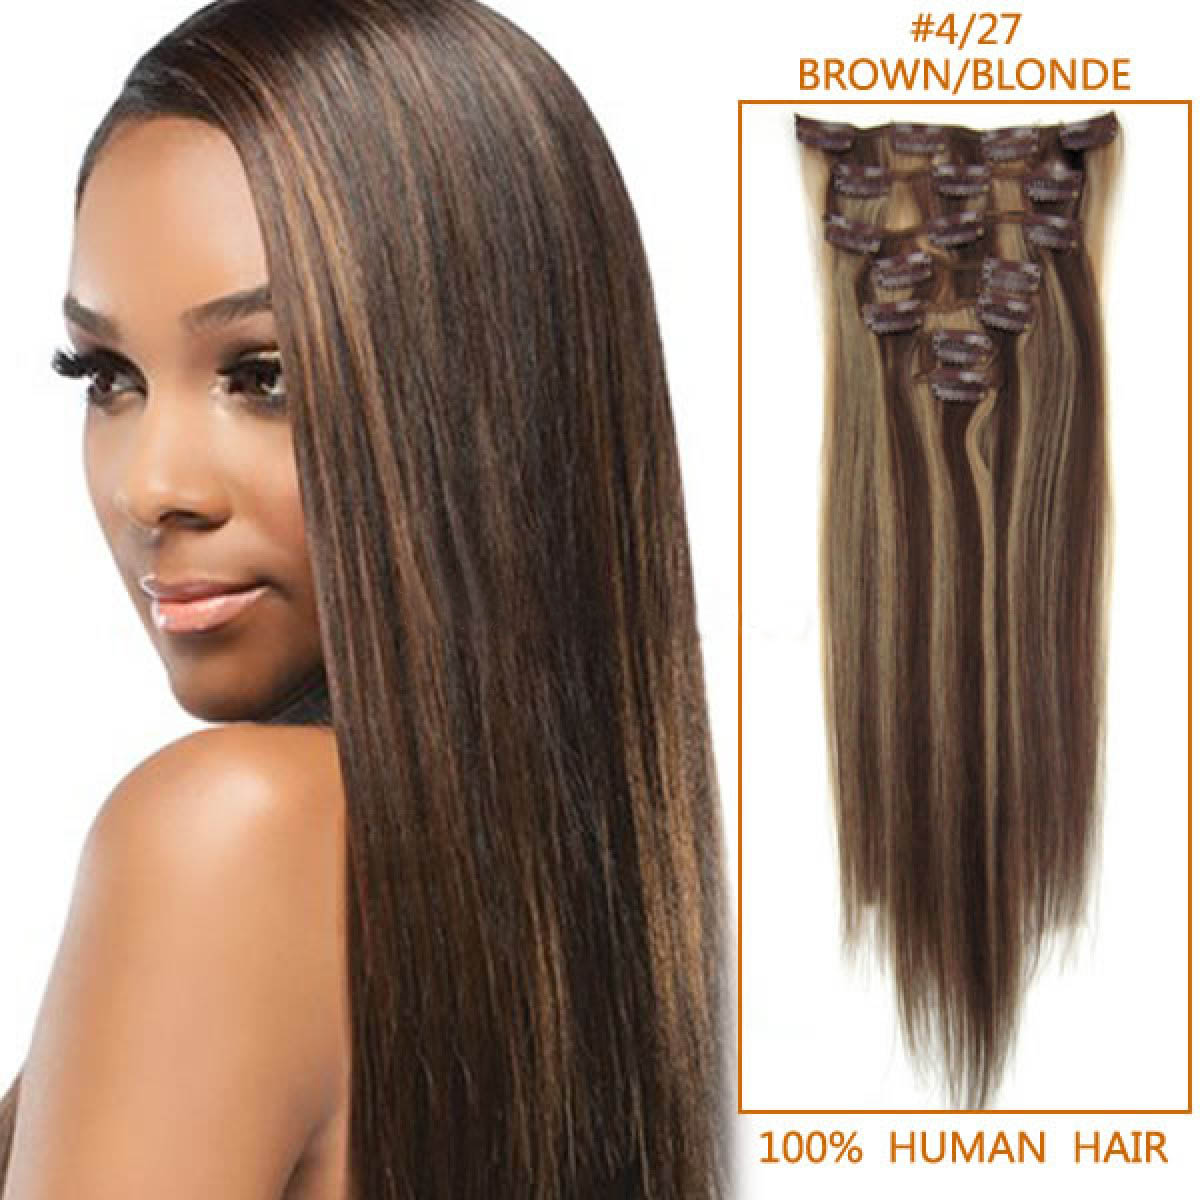 20 Inch  4 27 Brown Blonde Clip In Remy Human Hair Extensions 9pcs 3971f1f2b89d